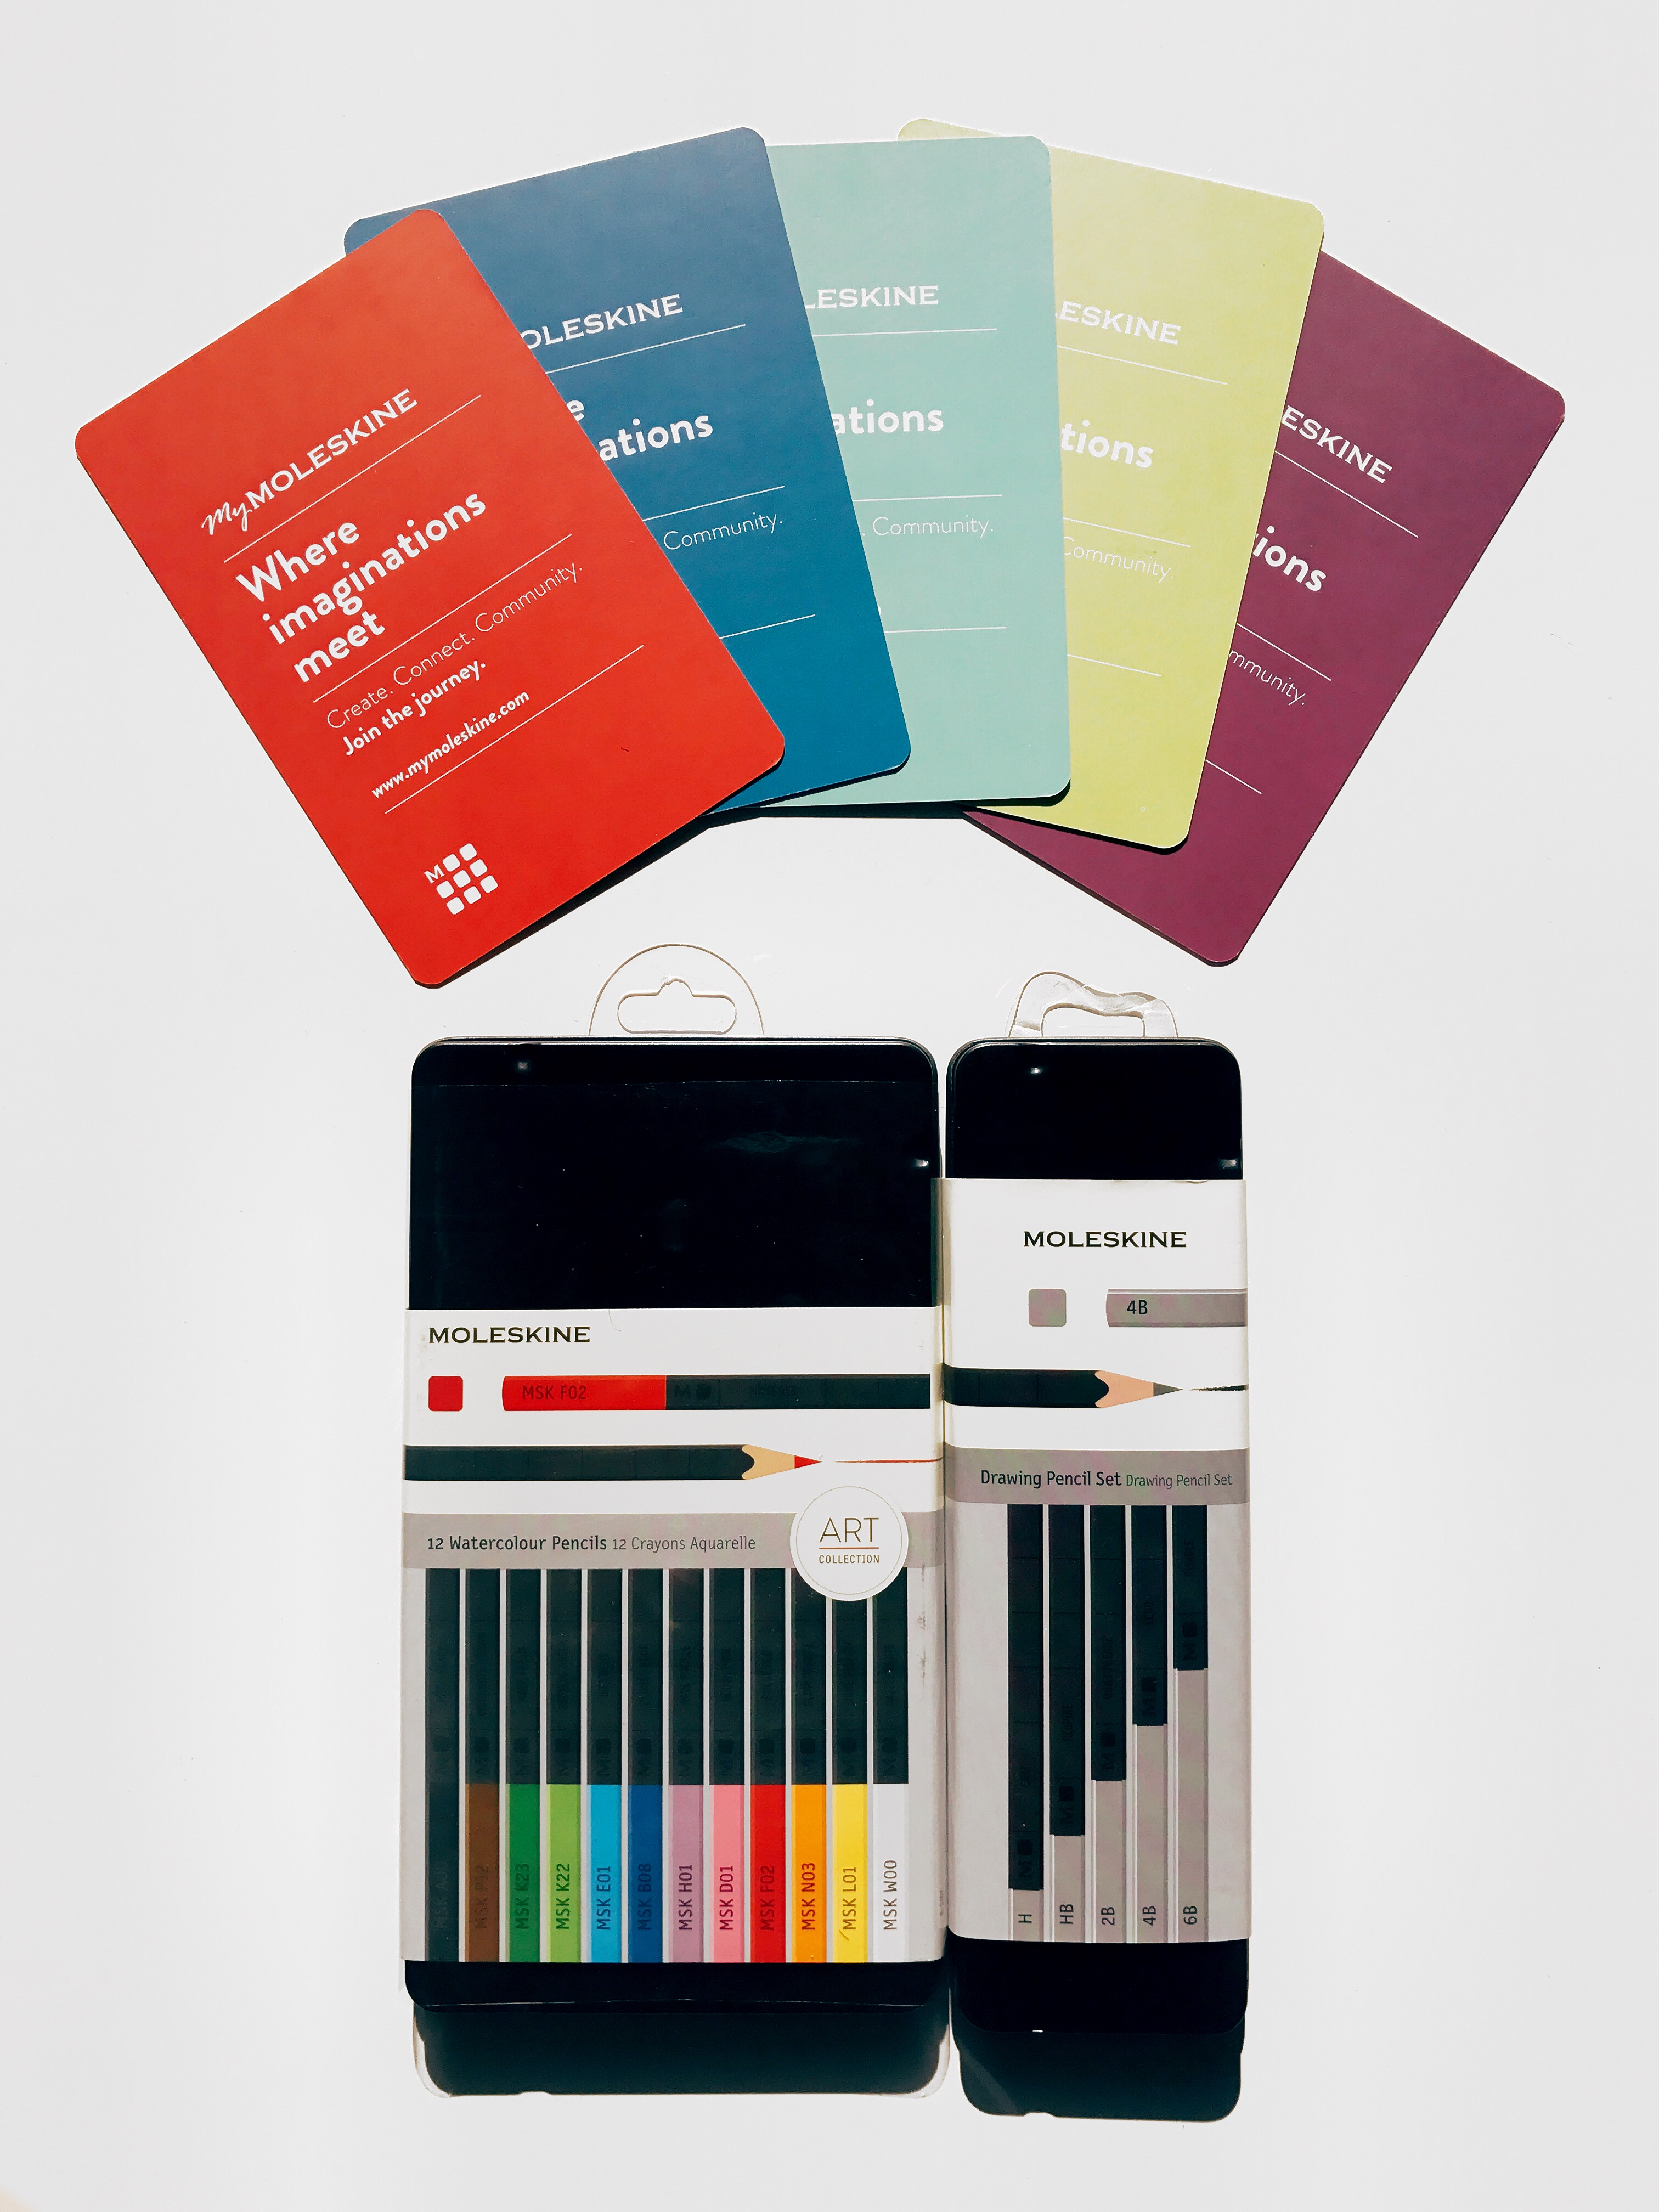 The new Sets of Moleskine Pencils